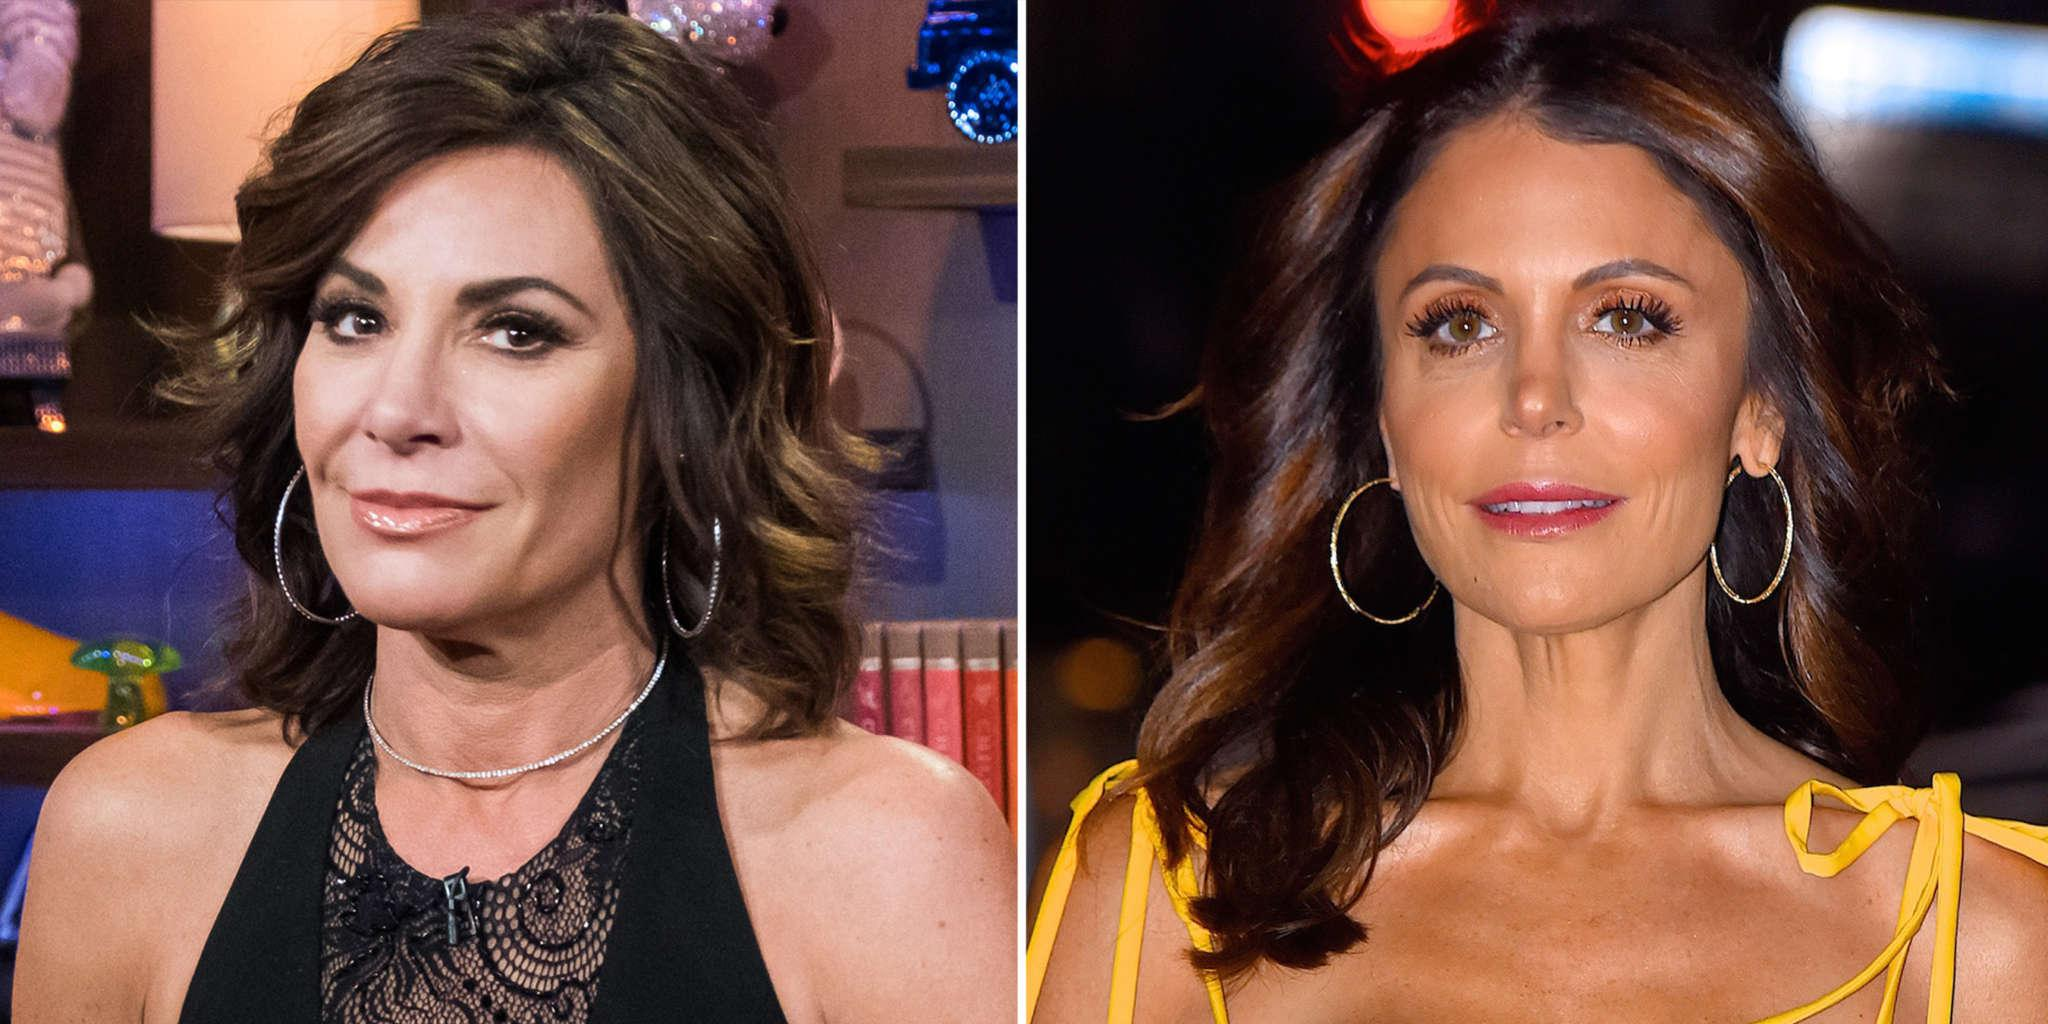 Luann De Lesseps Claims The Whole RHONY Cast Is 'Relieved' That Bethenny Frankel Is No Longer On The Show!